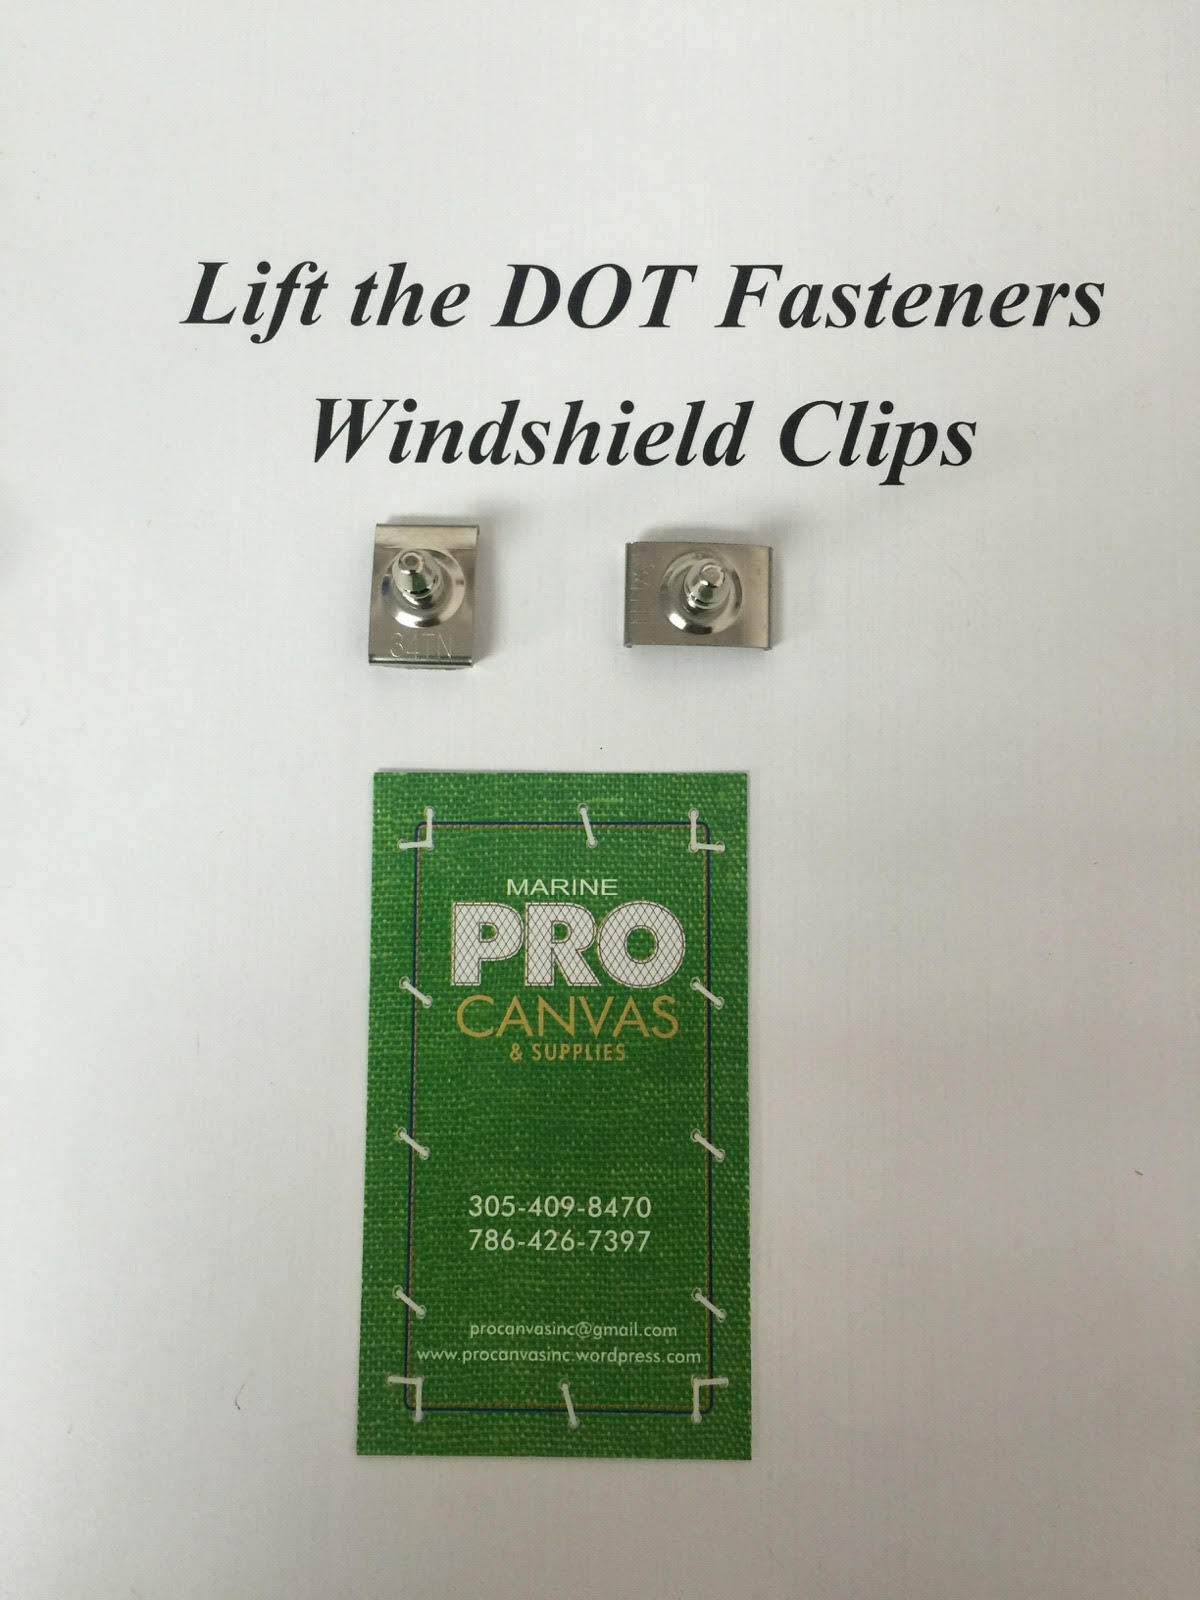 "Lift-the-Dot Fasteners Stainless Steel Windshield Clips 3/4"" 100 pieces"